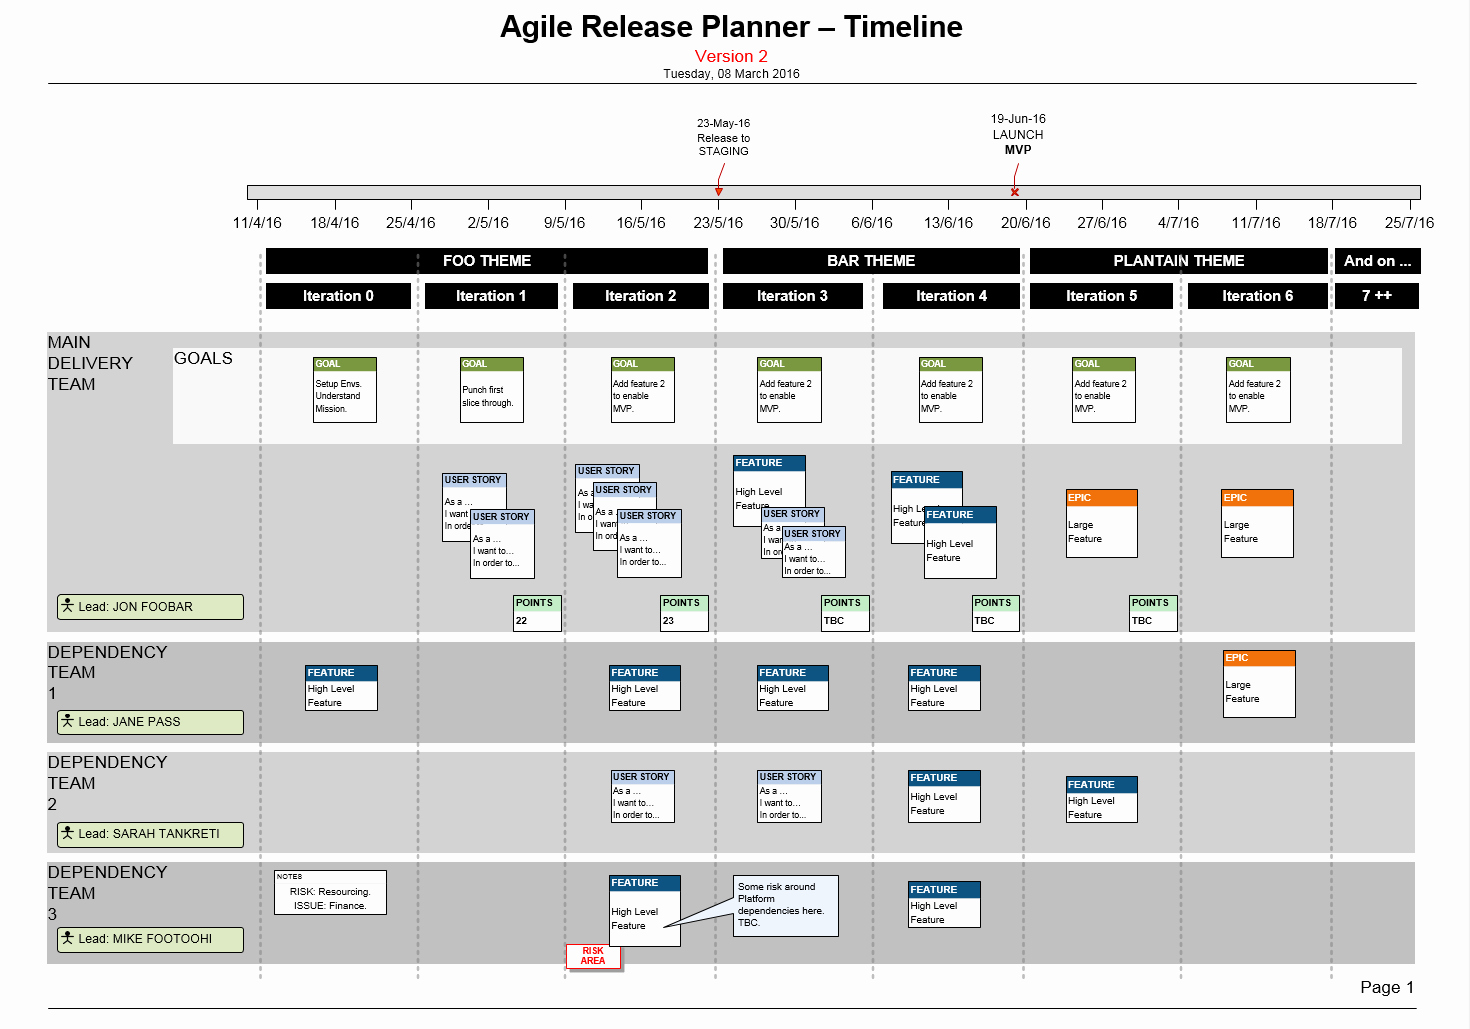 Agile Project Plan Template Excel Luxury Visio Agile Release Plan for Scrum Teams Story Map & Mvp